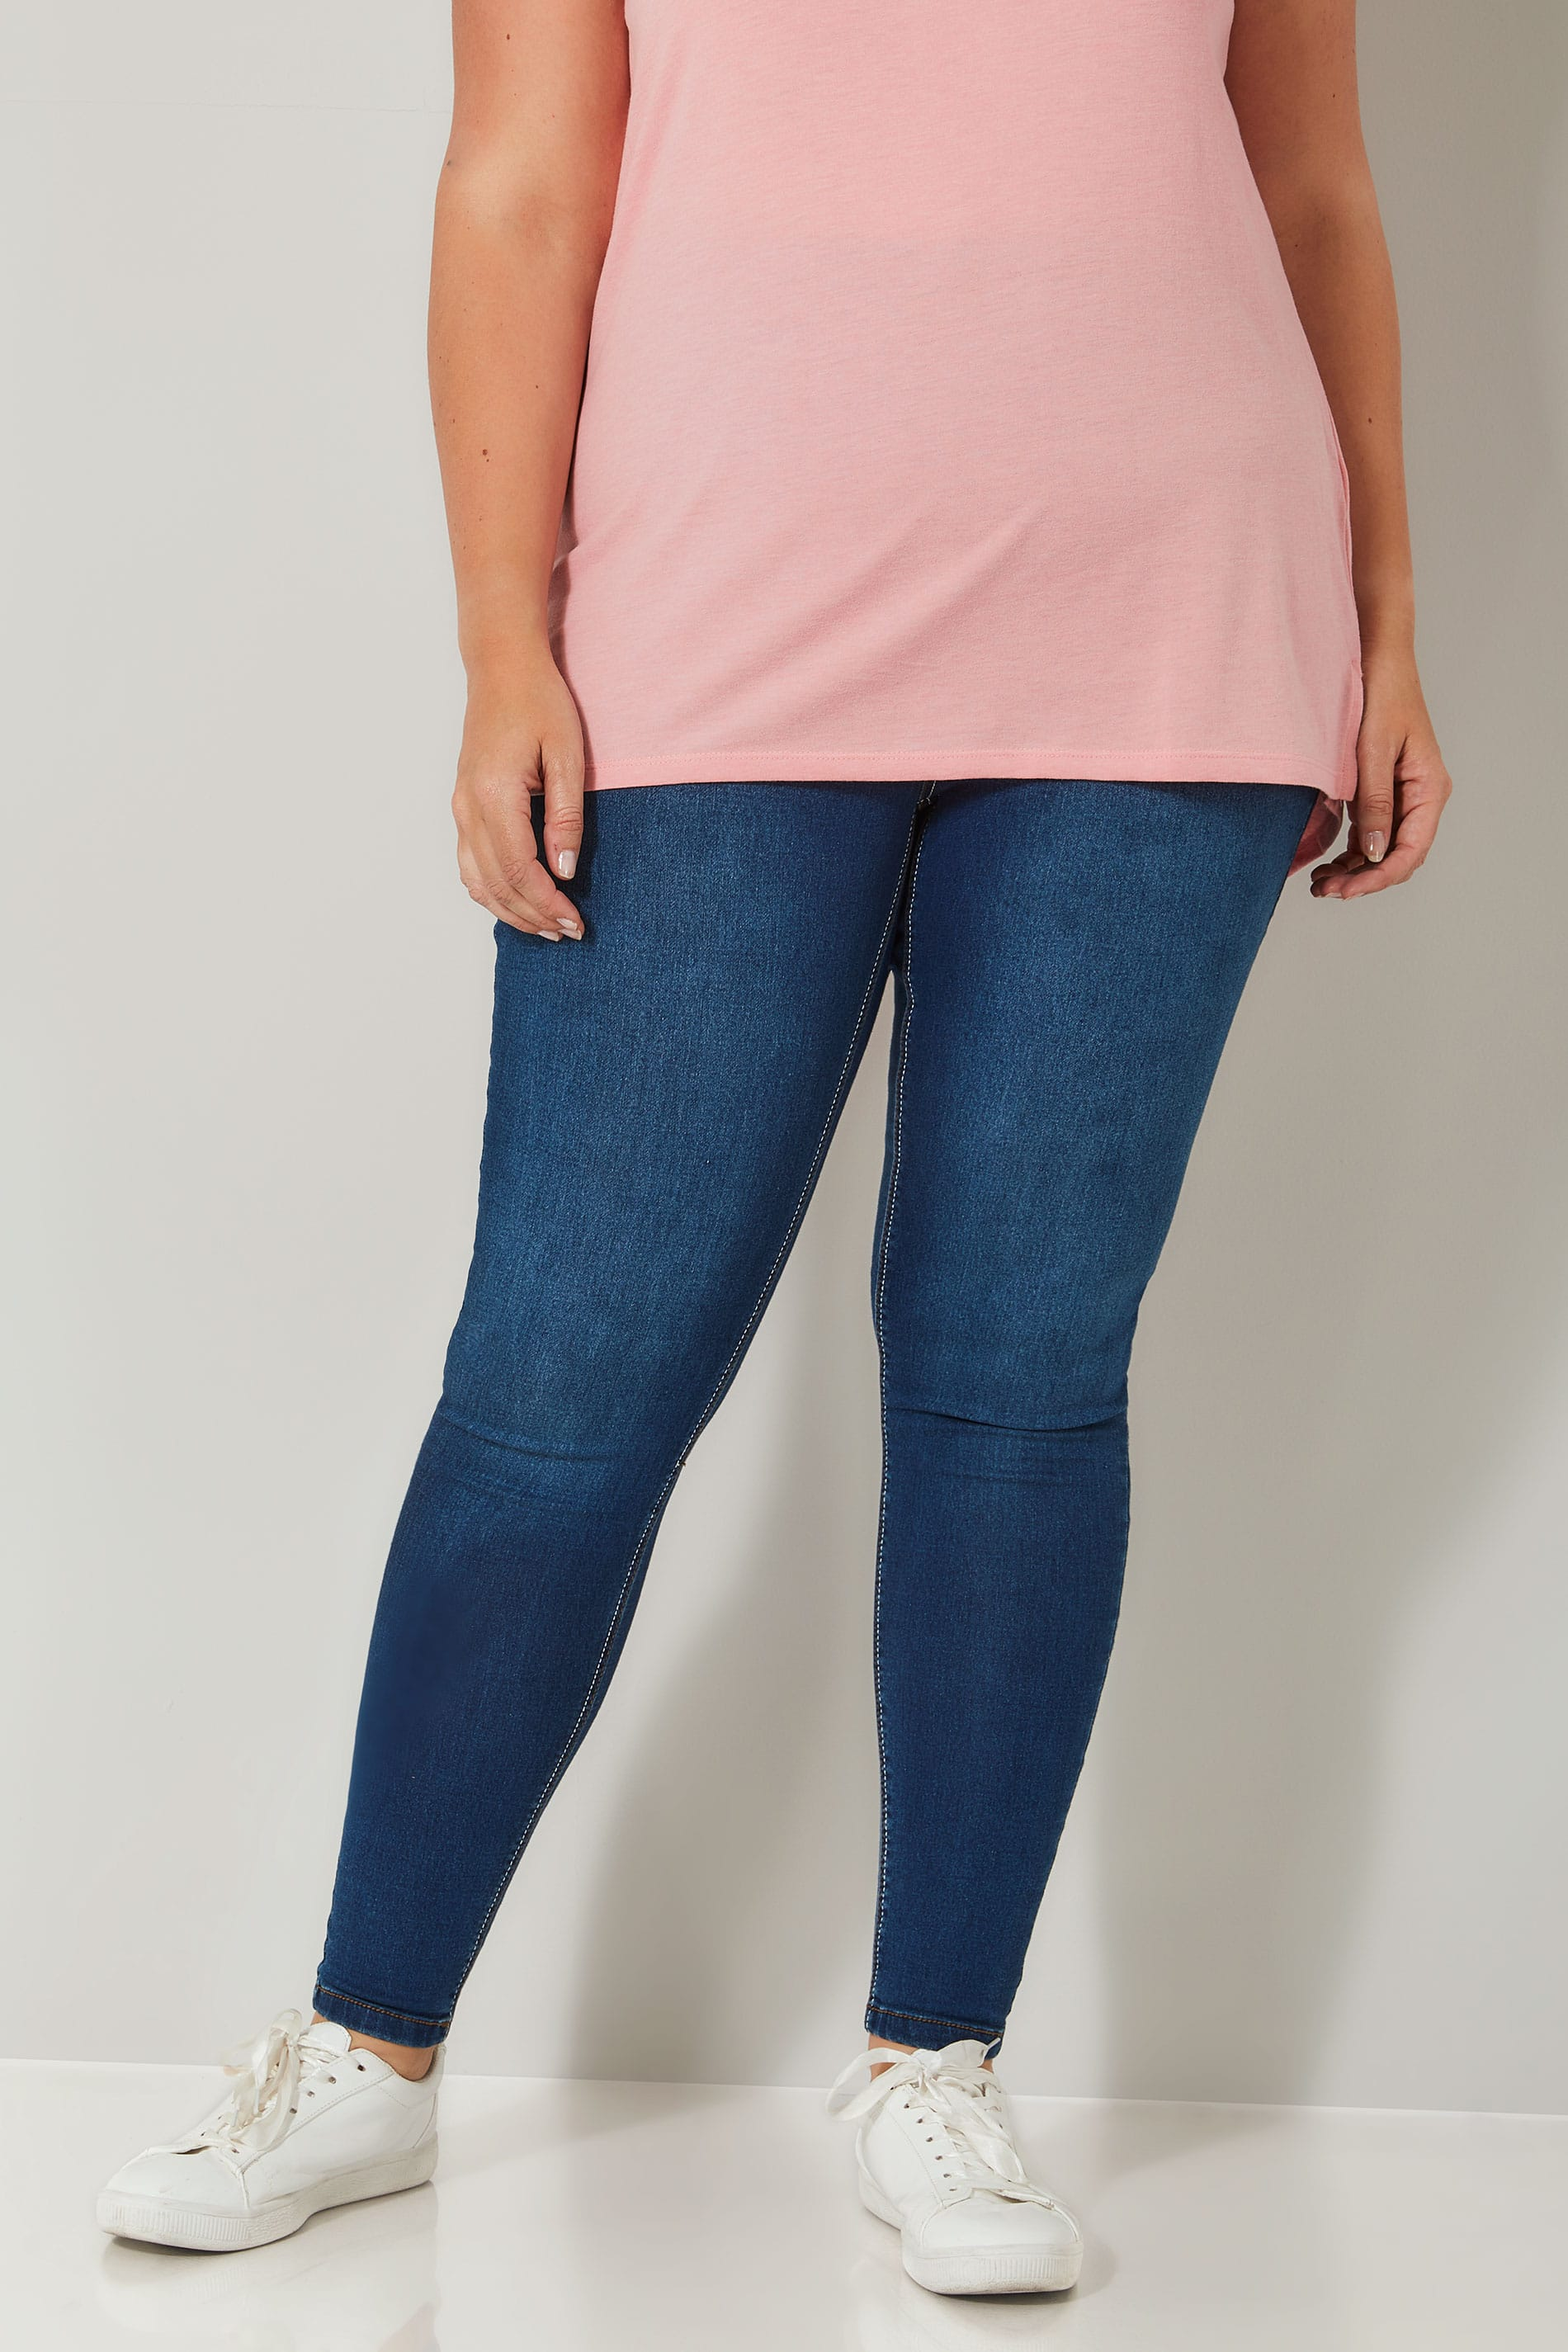 Jeggings mit blauer waschung und ulimativer comfort stretch jenny gro e gr en 44 64 - Div background image ...